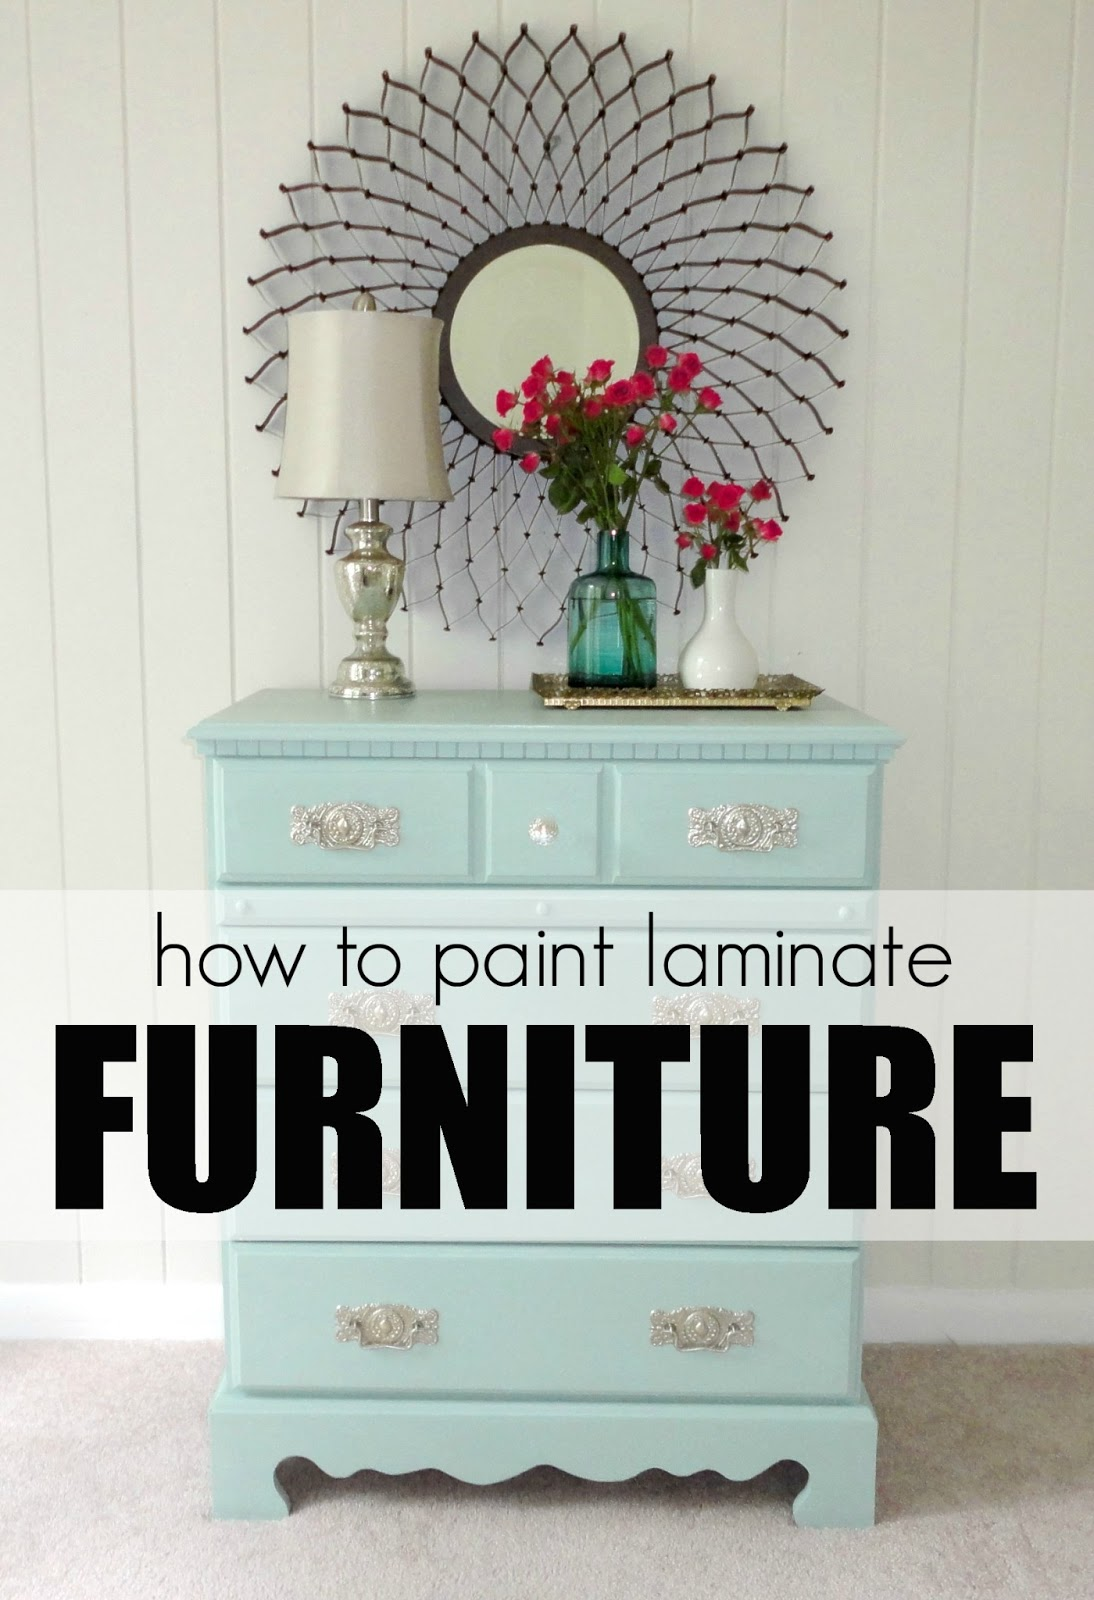 Miraculous Livelovediy How To Paint Laminate Furniture In 3 Easy Steps Interior Design Ideas Jittwwsoteloinfo